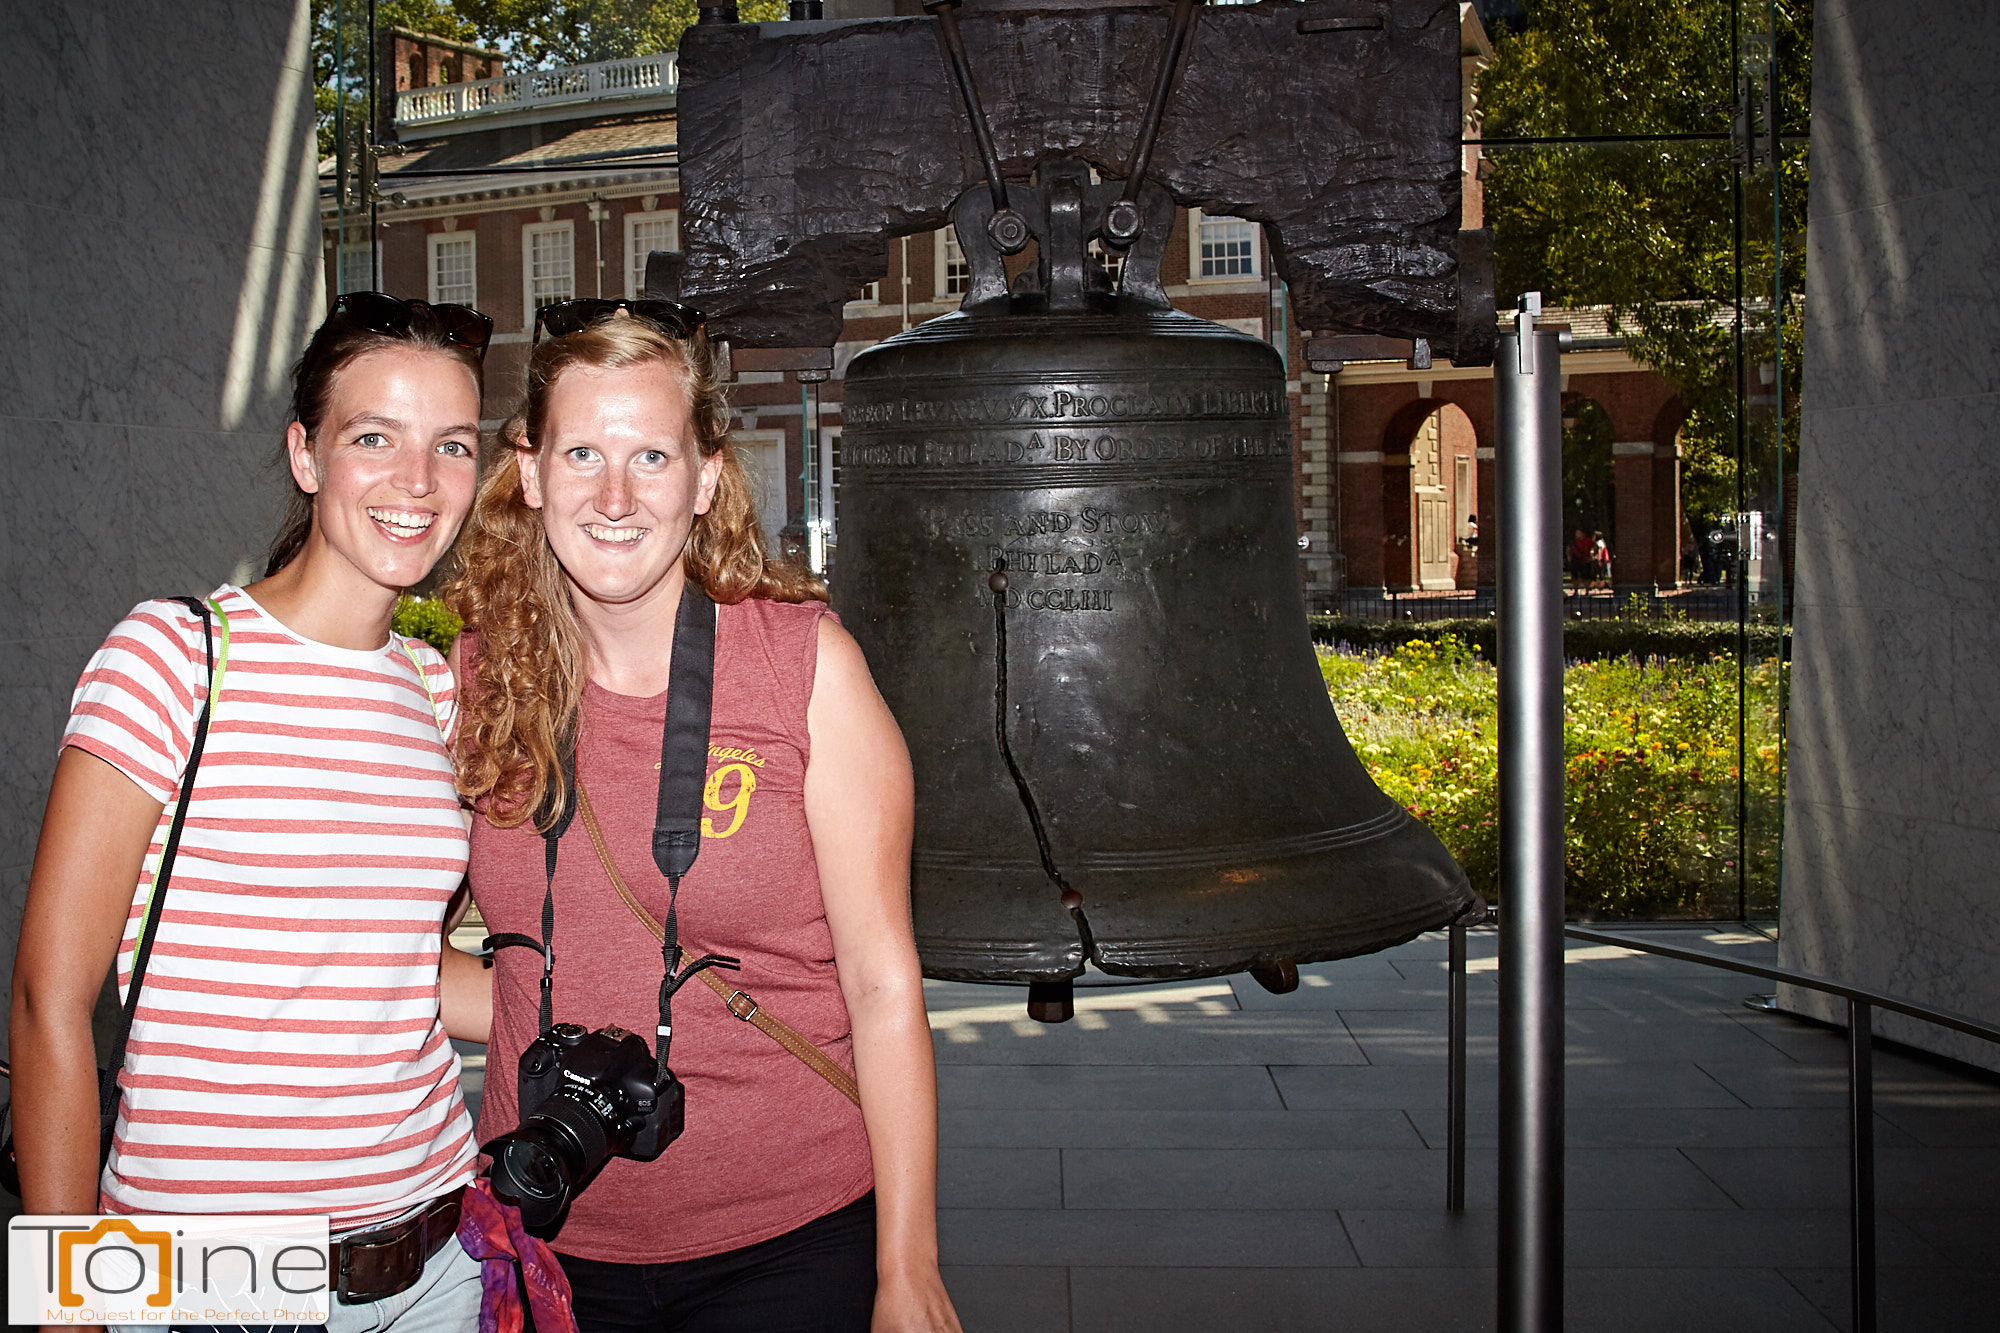 It wouldn't be a visit to Philadelphia without going to see the Liberty Bell!